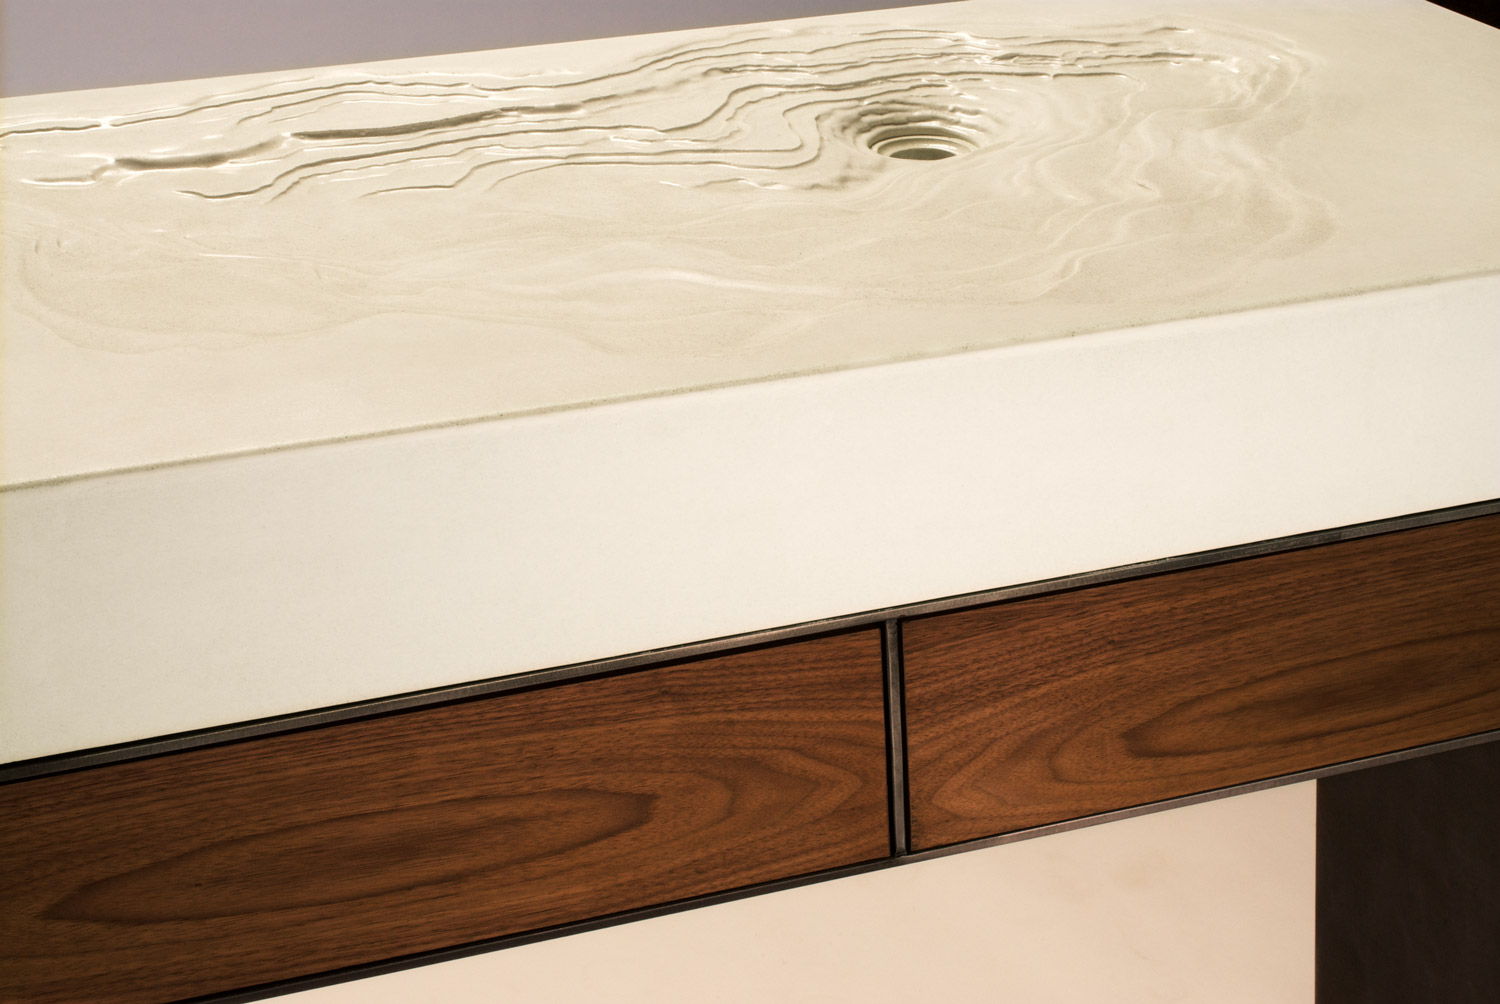 A concrete Erosion Sink on a custom steel base with walnut drawers featuring BLUM hardware. This sink was made for and exhibited at Dwell on Design in Los Angeles, CA